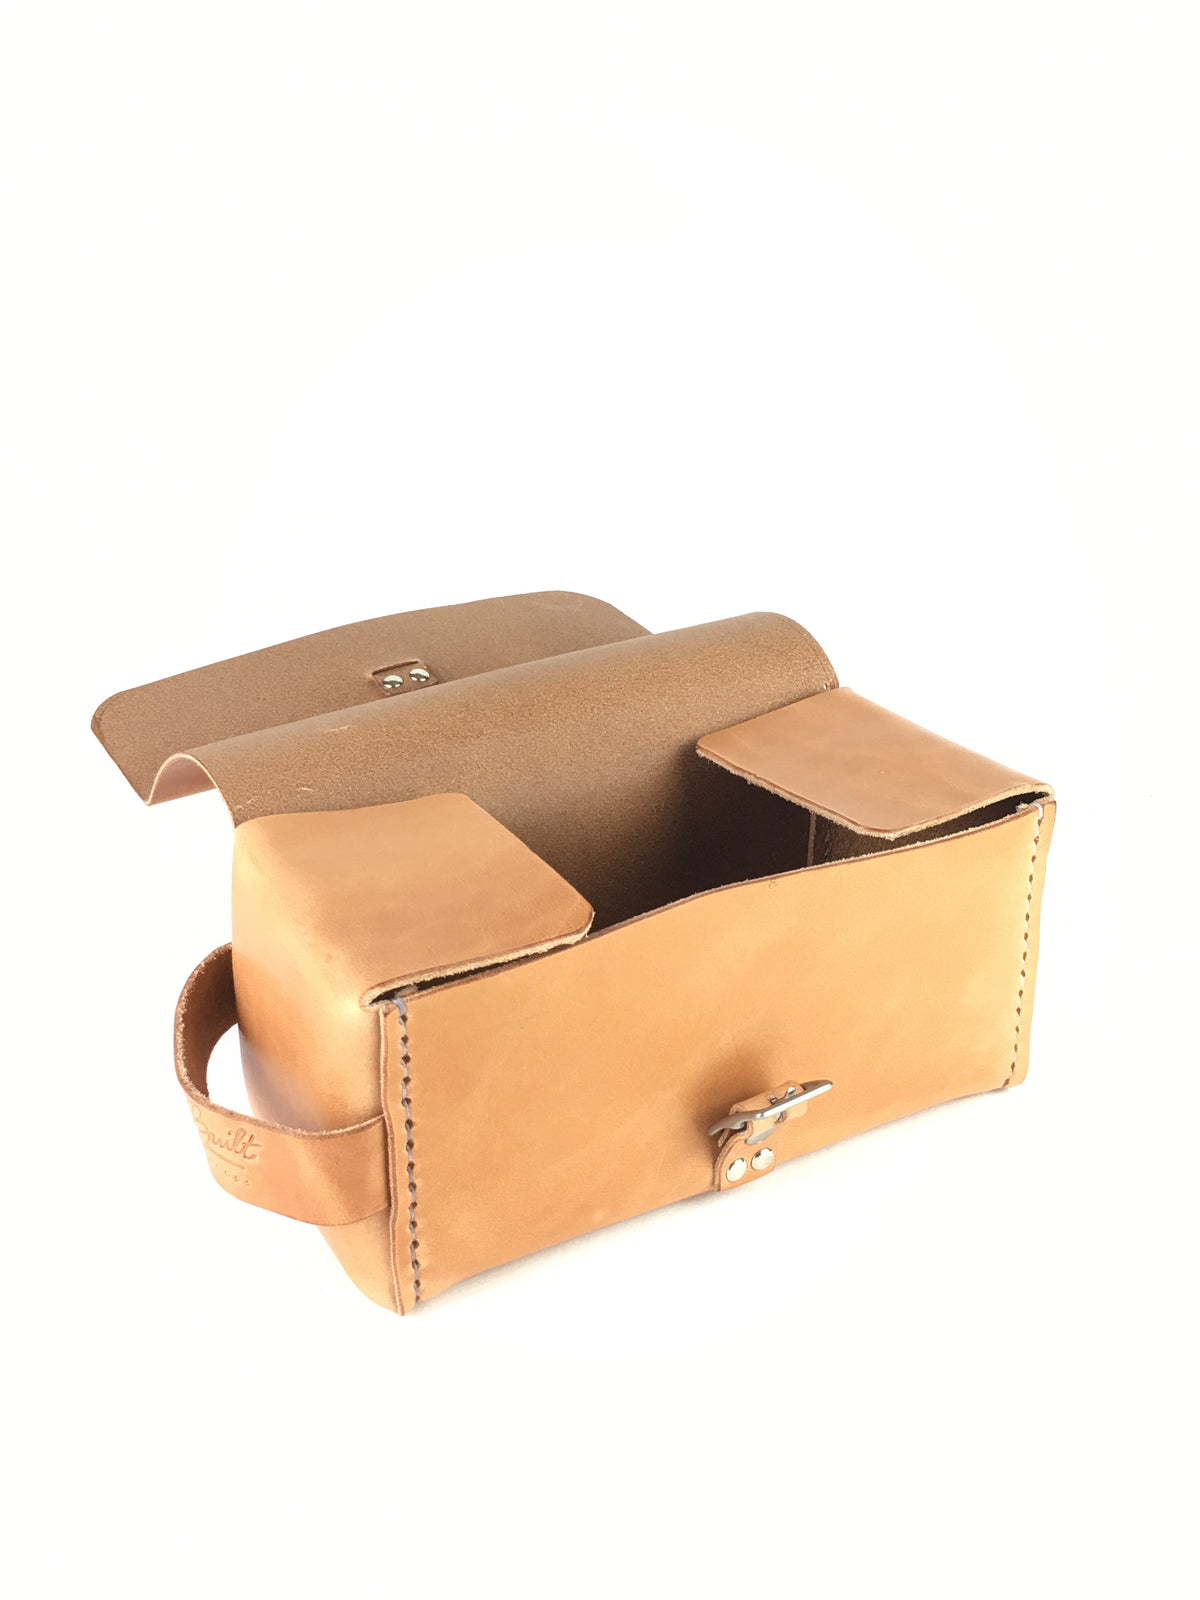 H+B SIMPLE DOPP KIT | RUSSET LEATHER